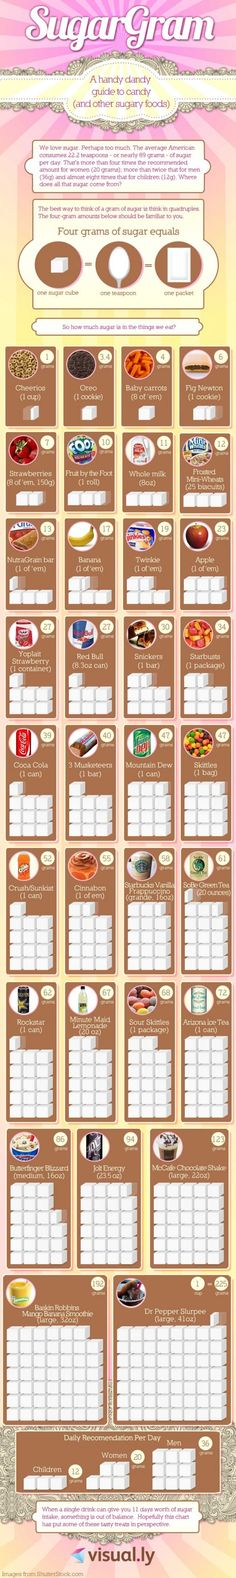 SugarGram Infographic (makes me feel guilty for cravings!)